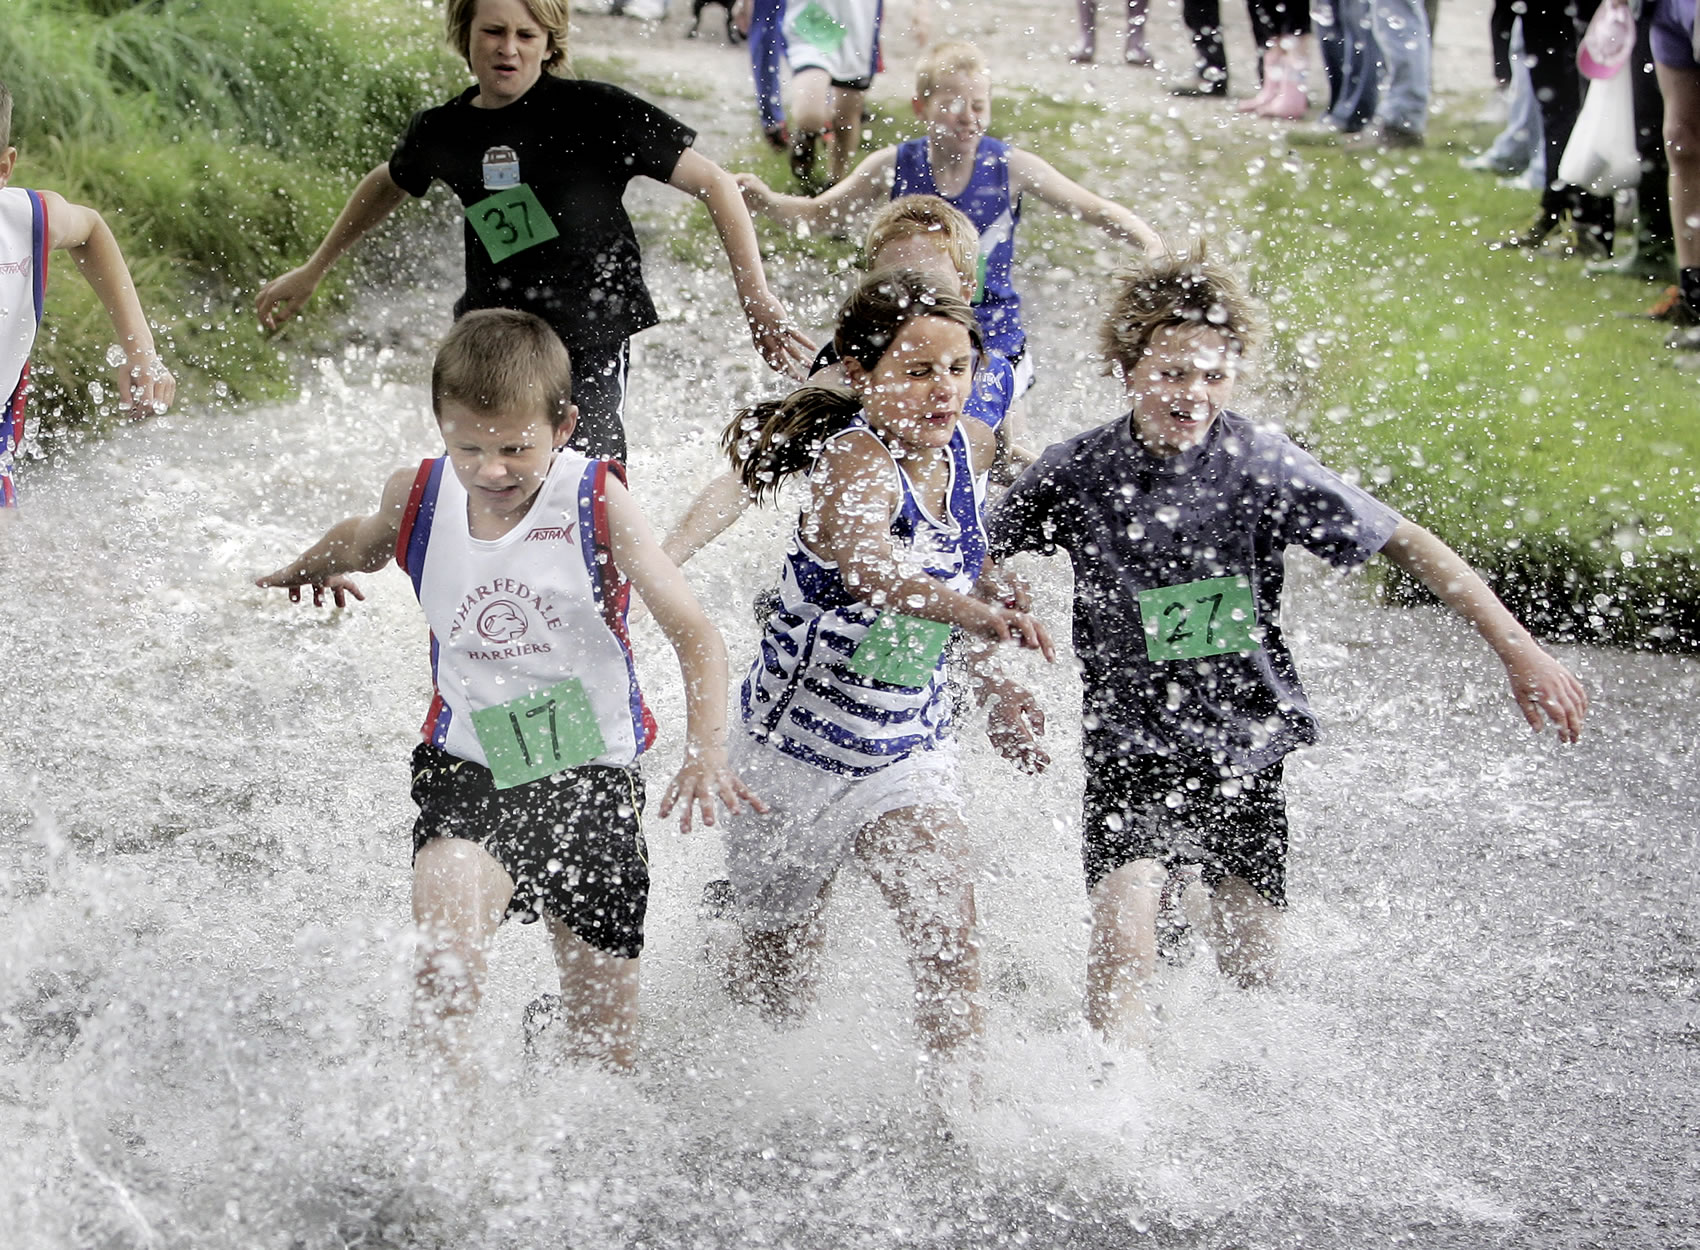 Making a splash at Malhamdale junior fell race